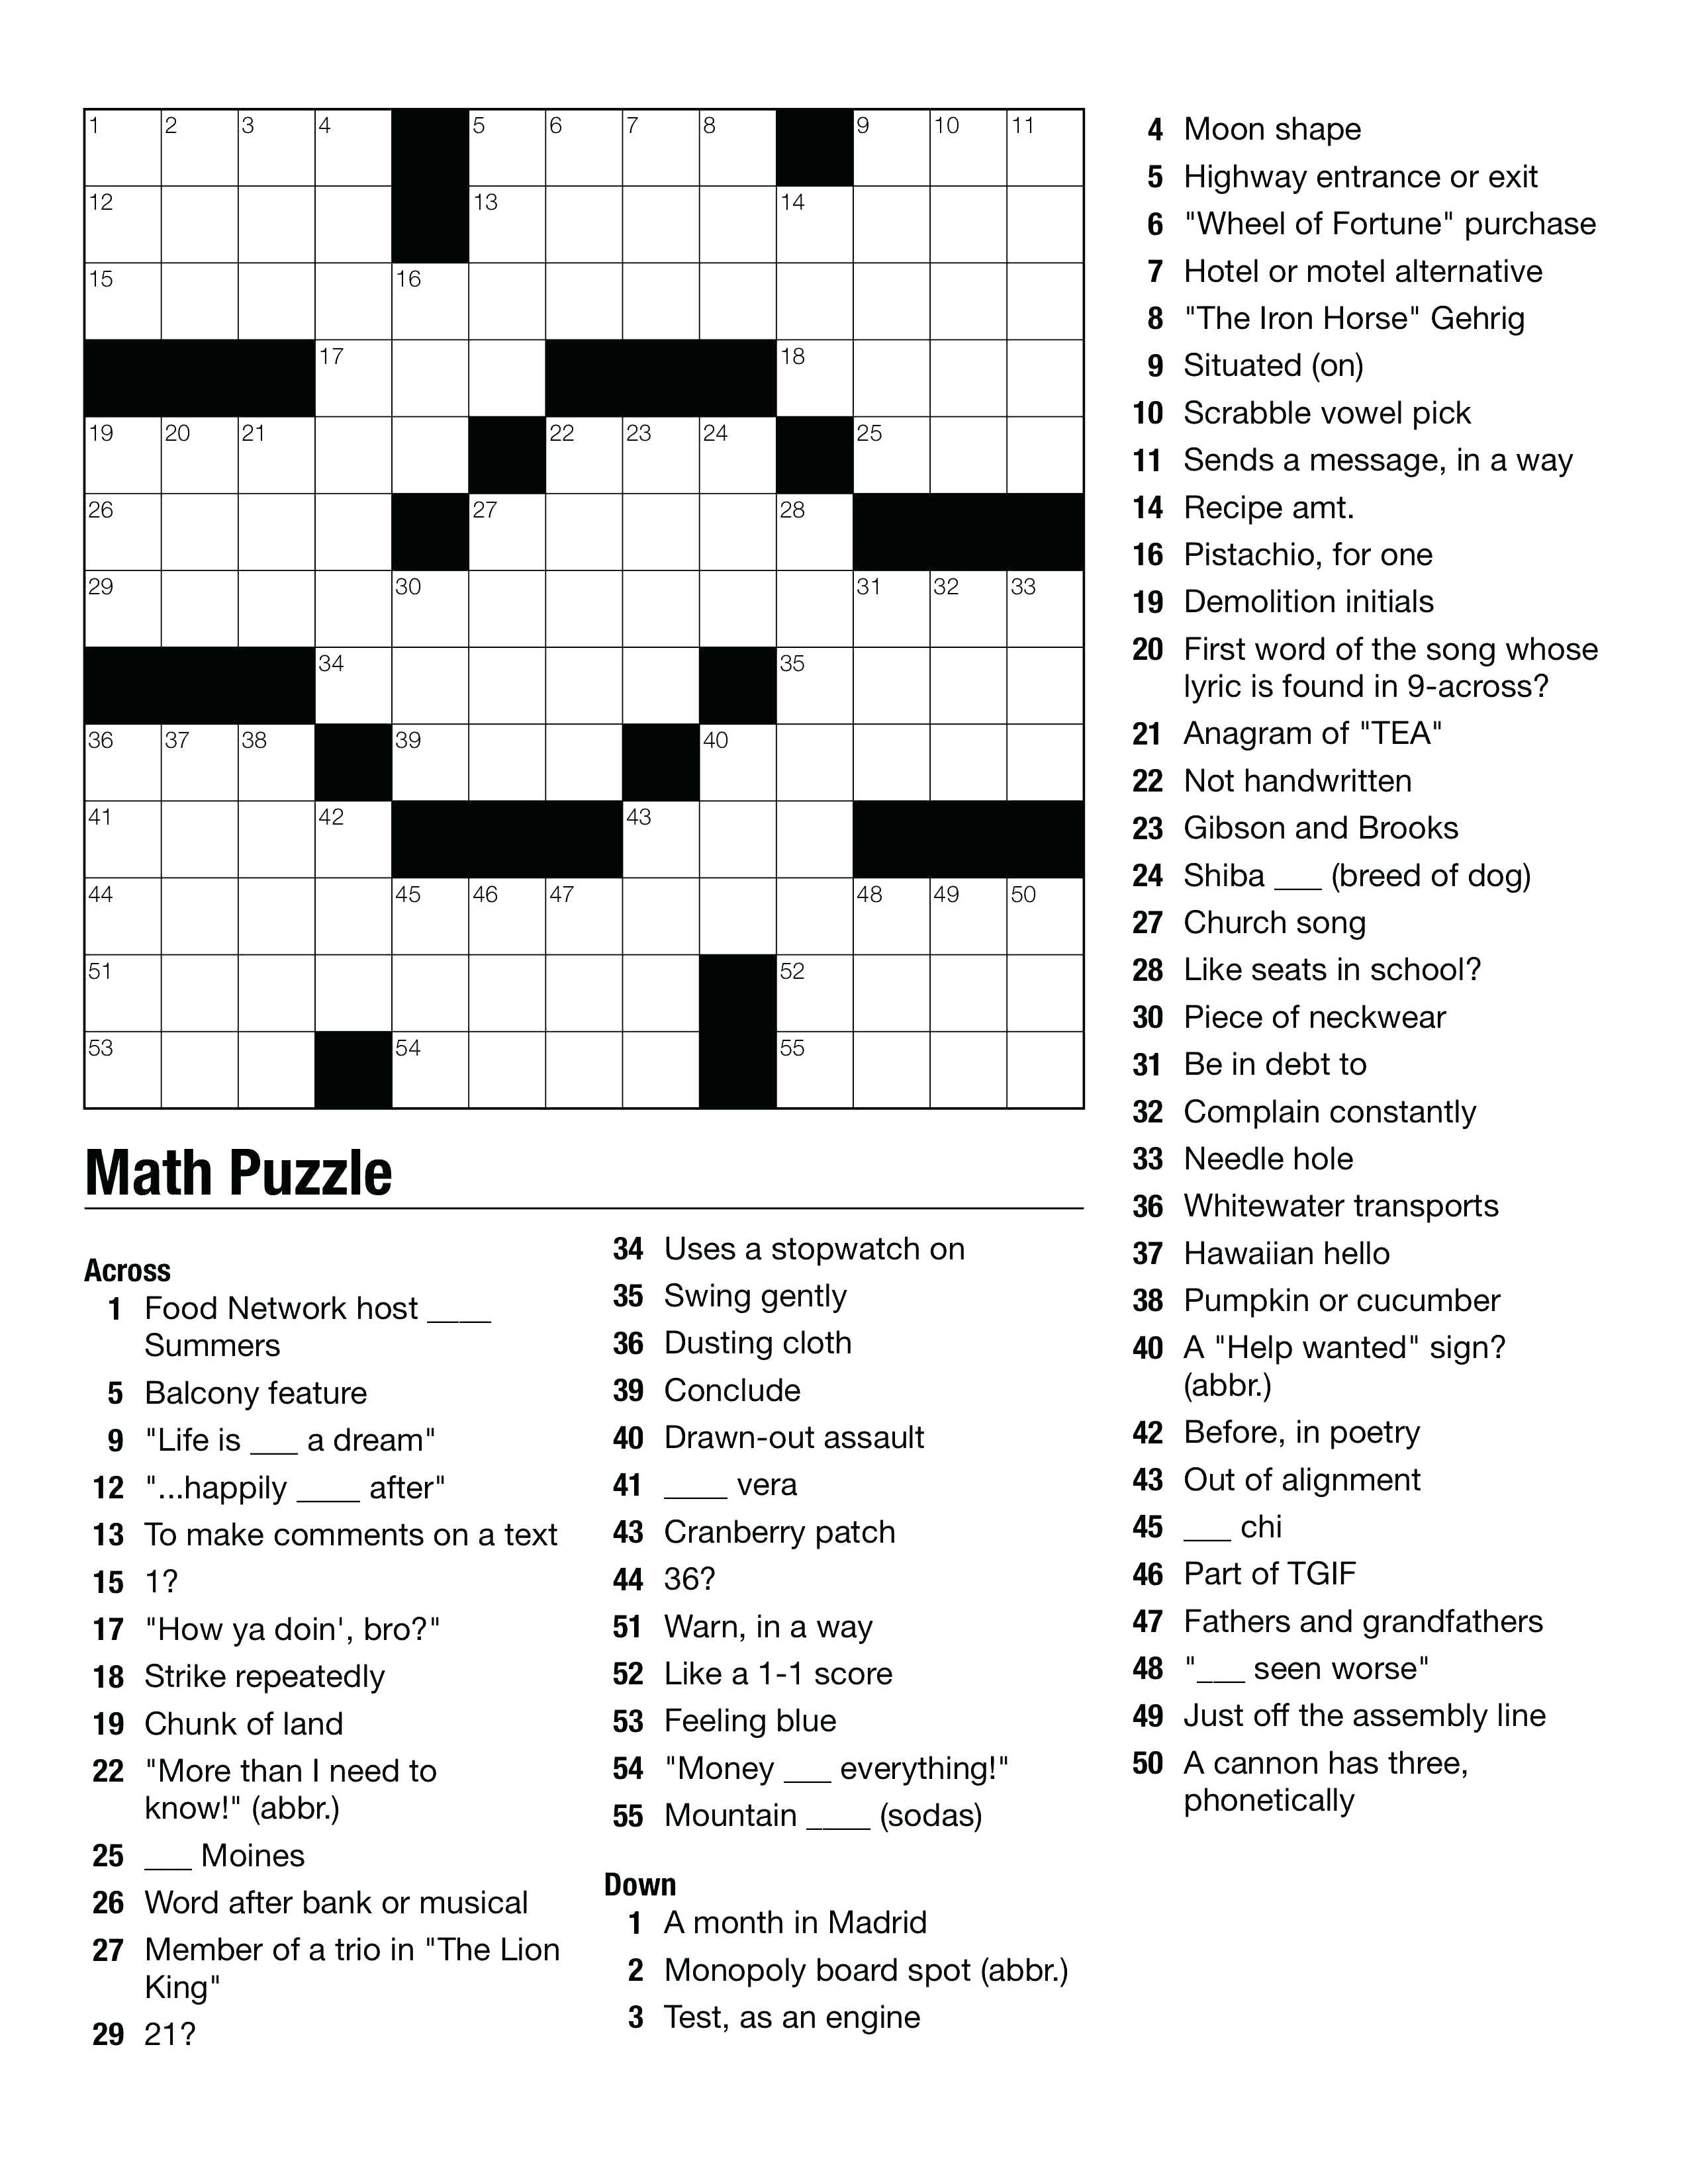 Geometry Puzzles Math Geometry Images Teaching Ideas On Crossword - Printable Puzzles For High School Students